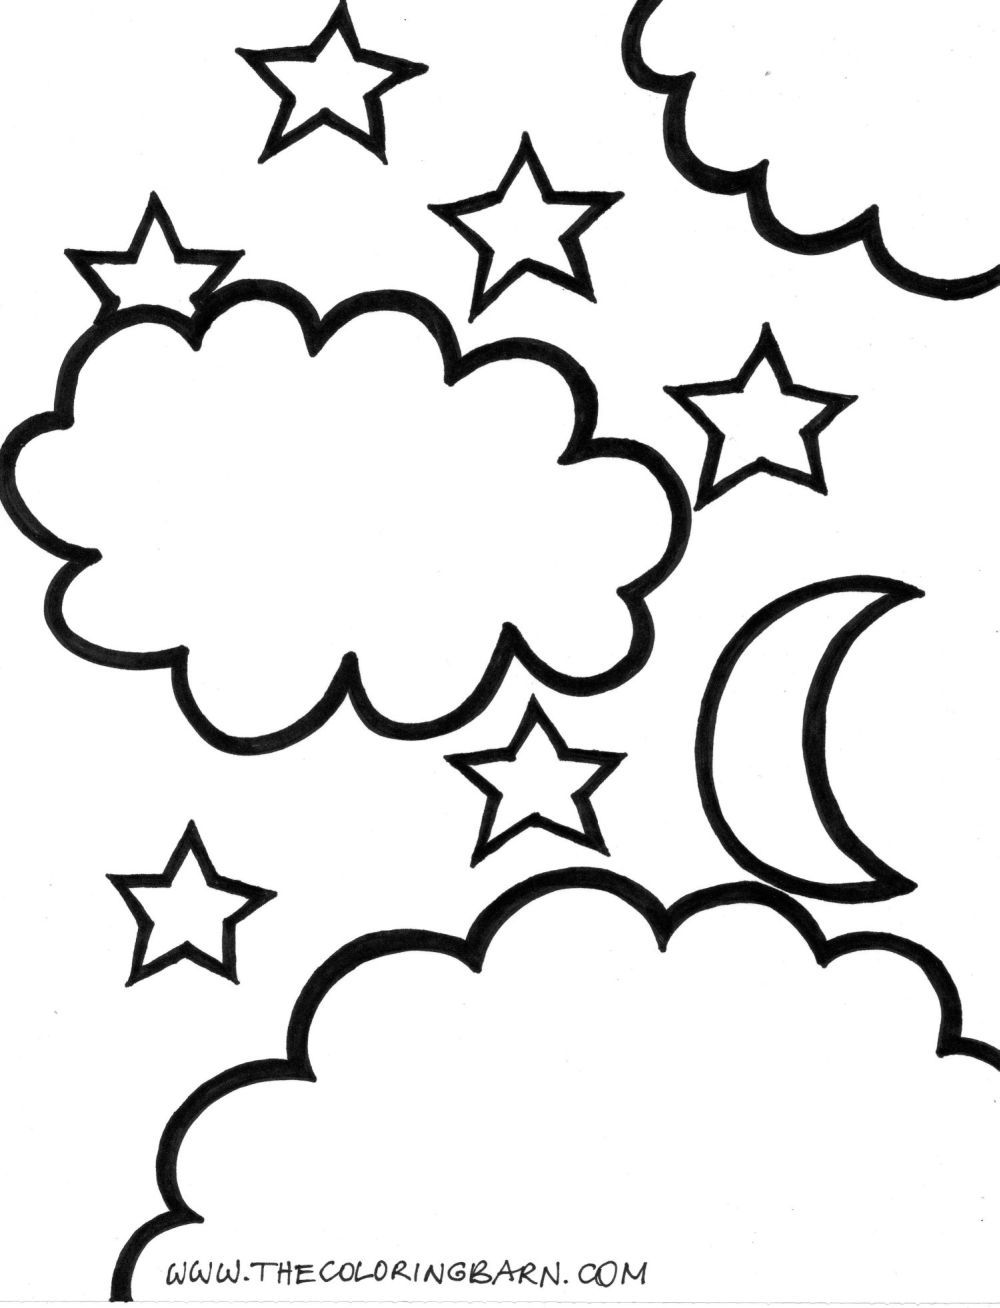 Moon And Star Coloring Page Star Coloring Pages Moon Coloring